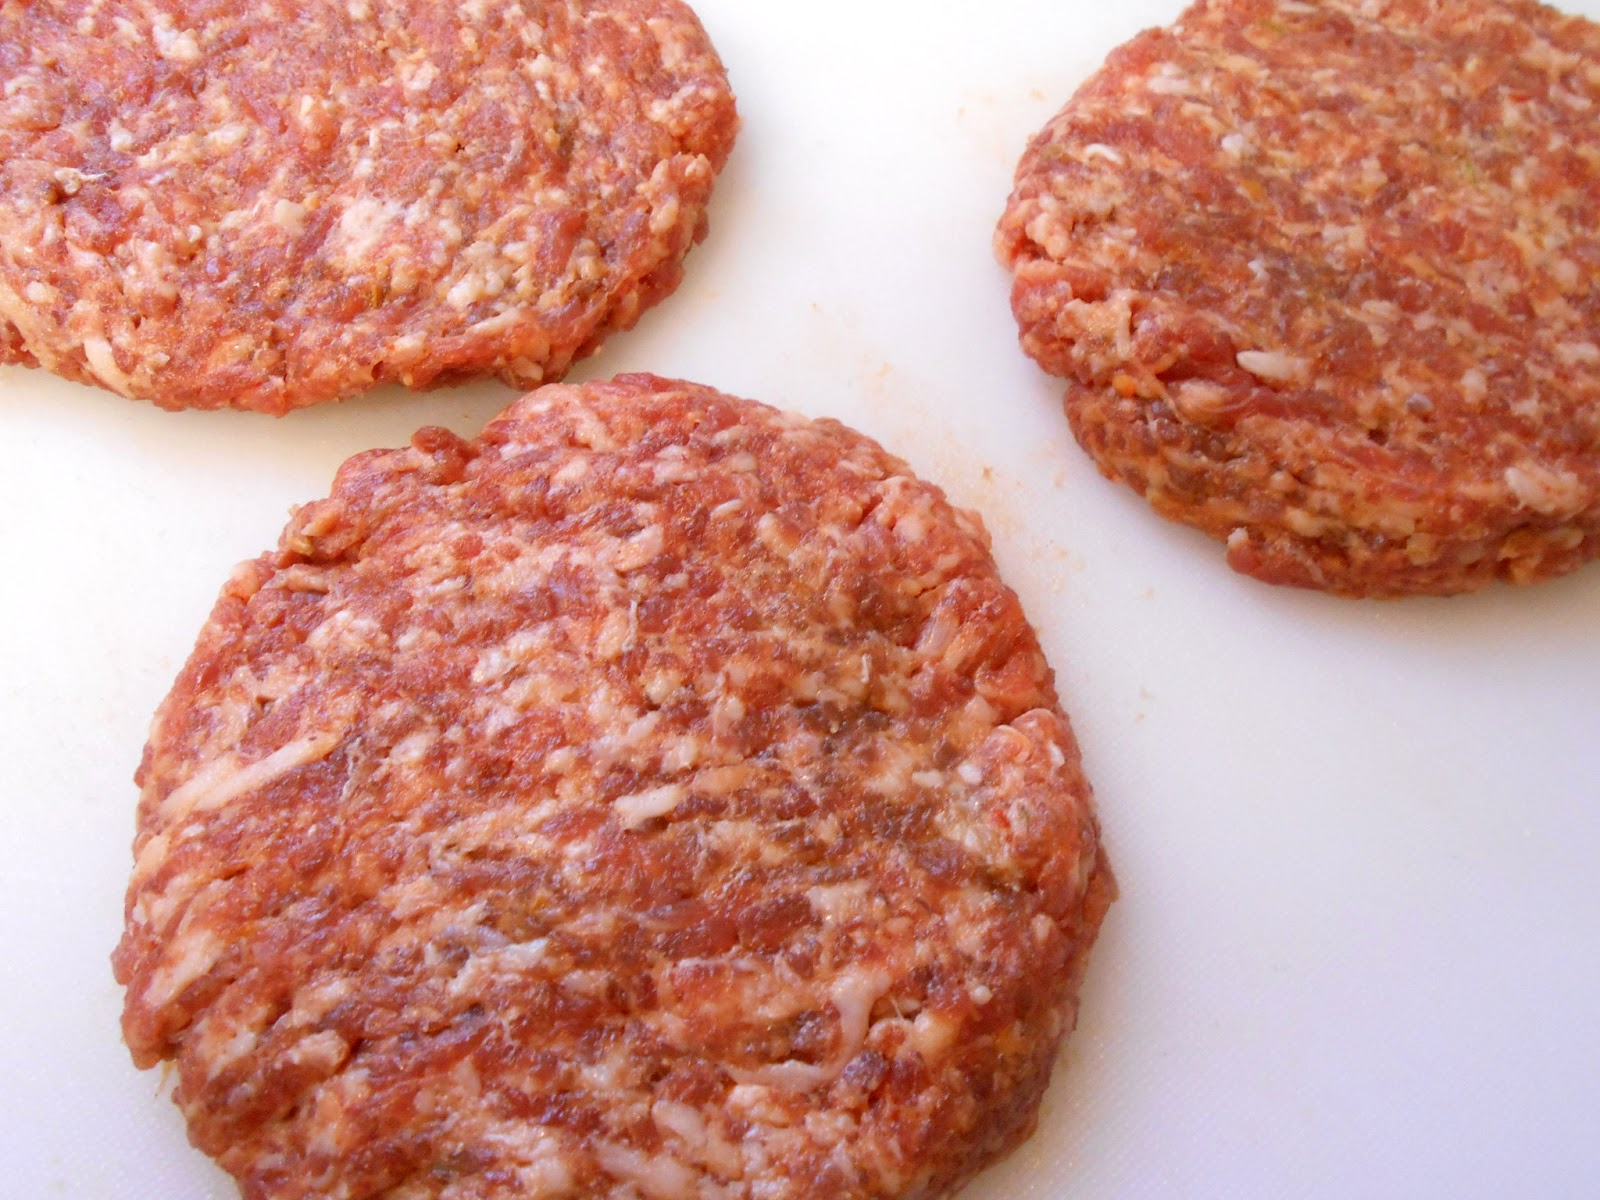 Italian Sausage Patties| Sausage Patties - Premio Sausages